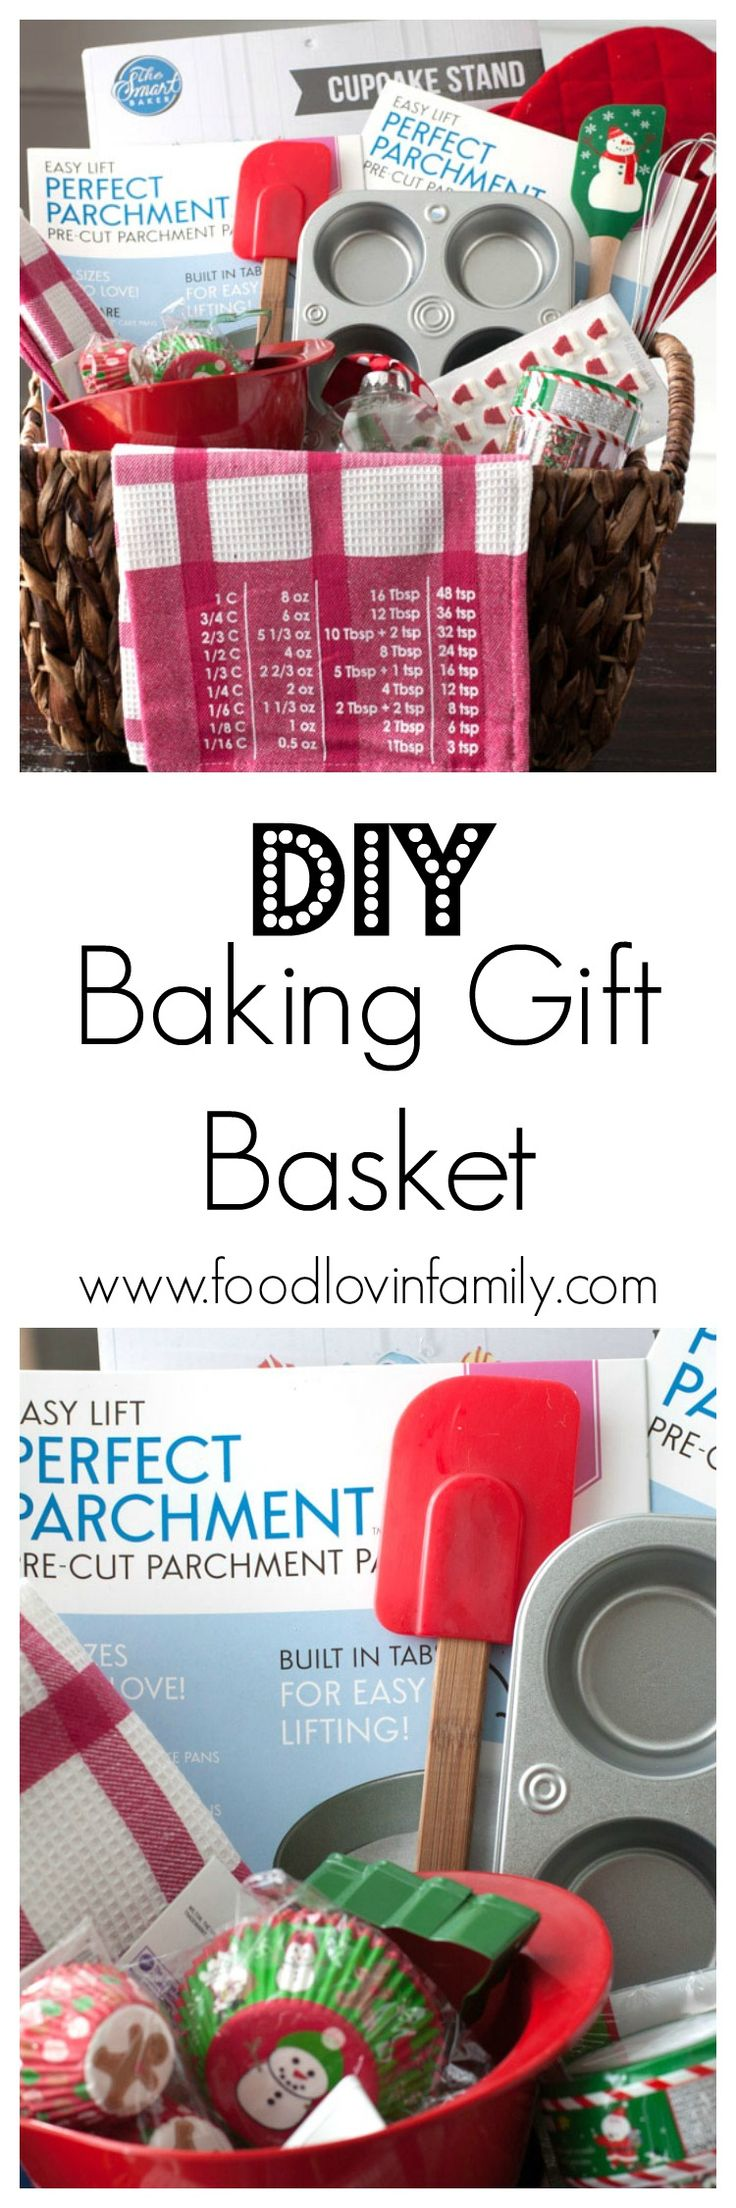 best ideas about baking gift baskets baking gift 17 best ideas about baking gift baskets baking gift gift baskets and gift baskets for women